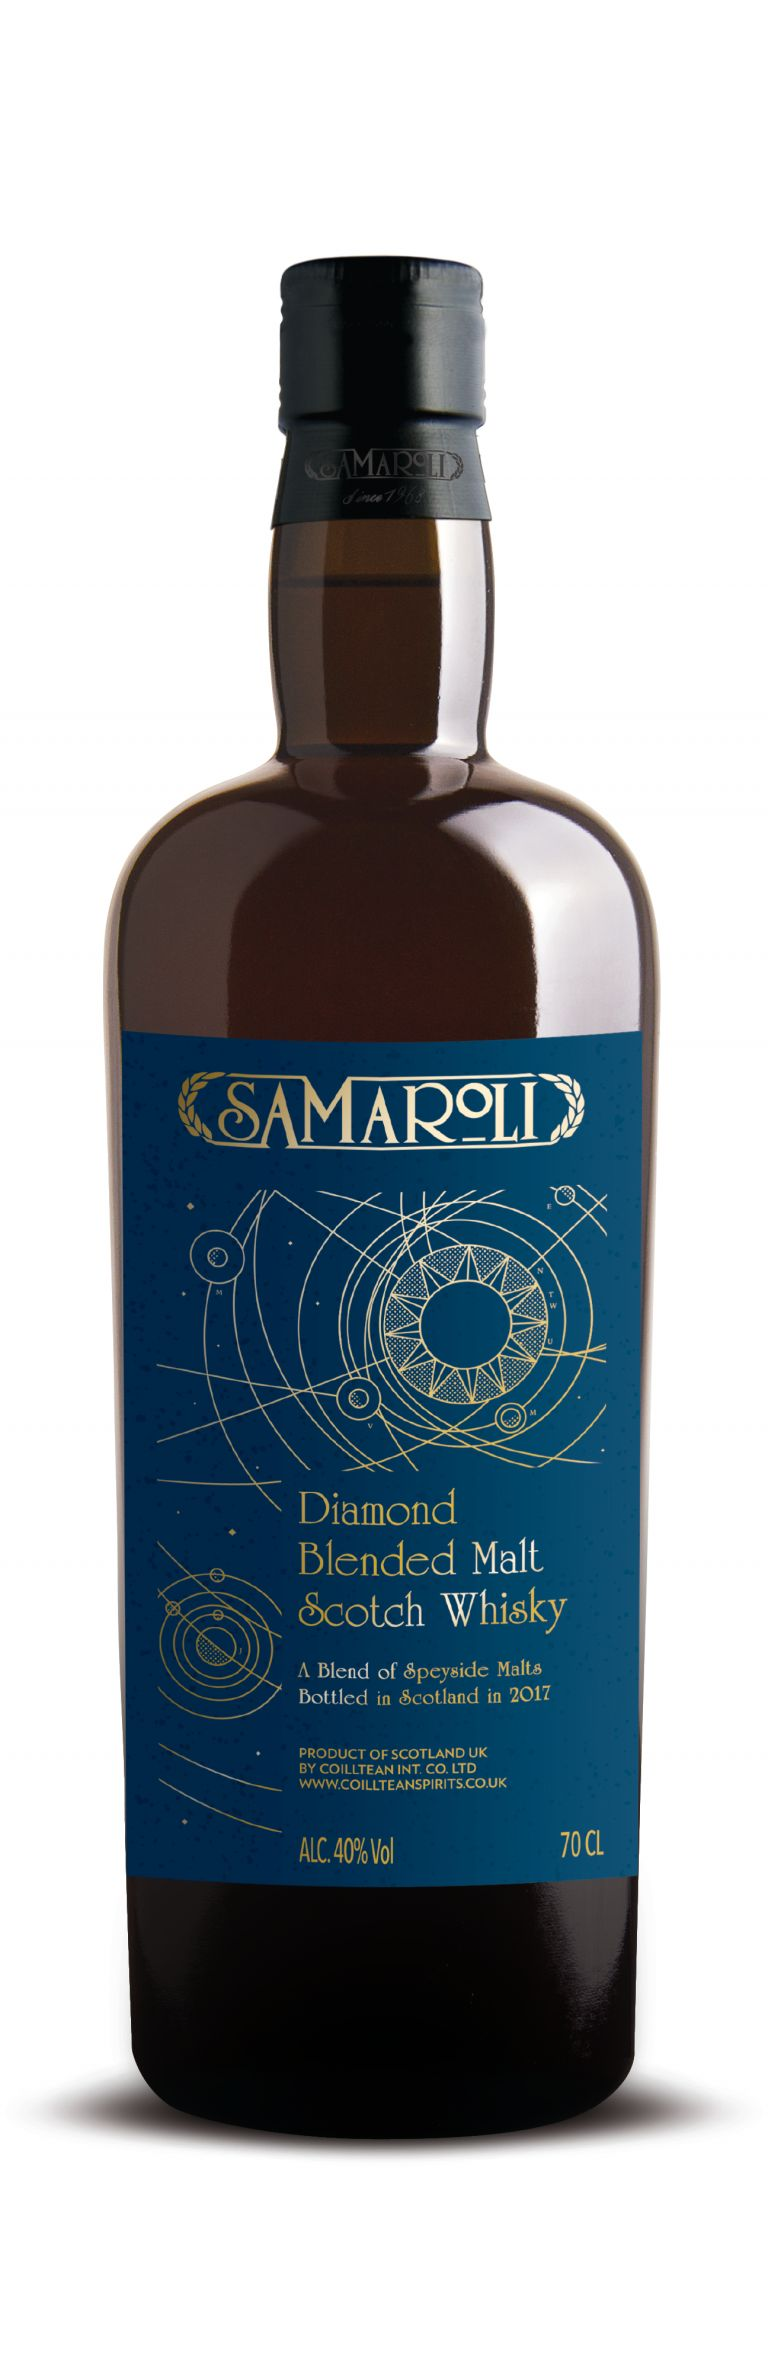 Samaroli Diamond - Blended Malt Scotch Whisky - ed. 2017 - 70 cl